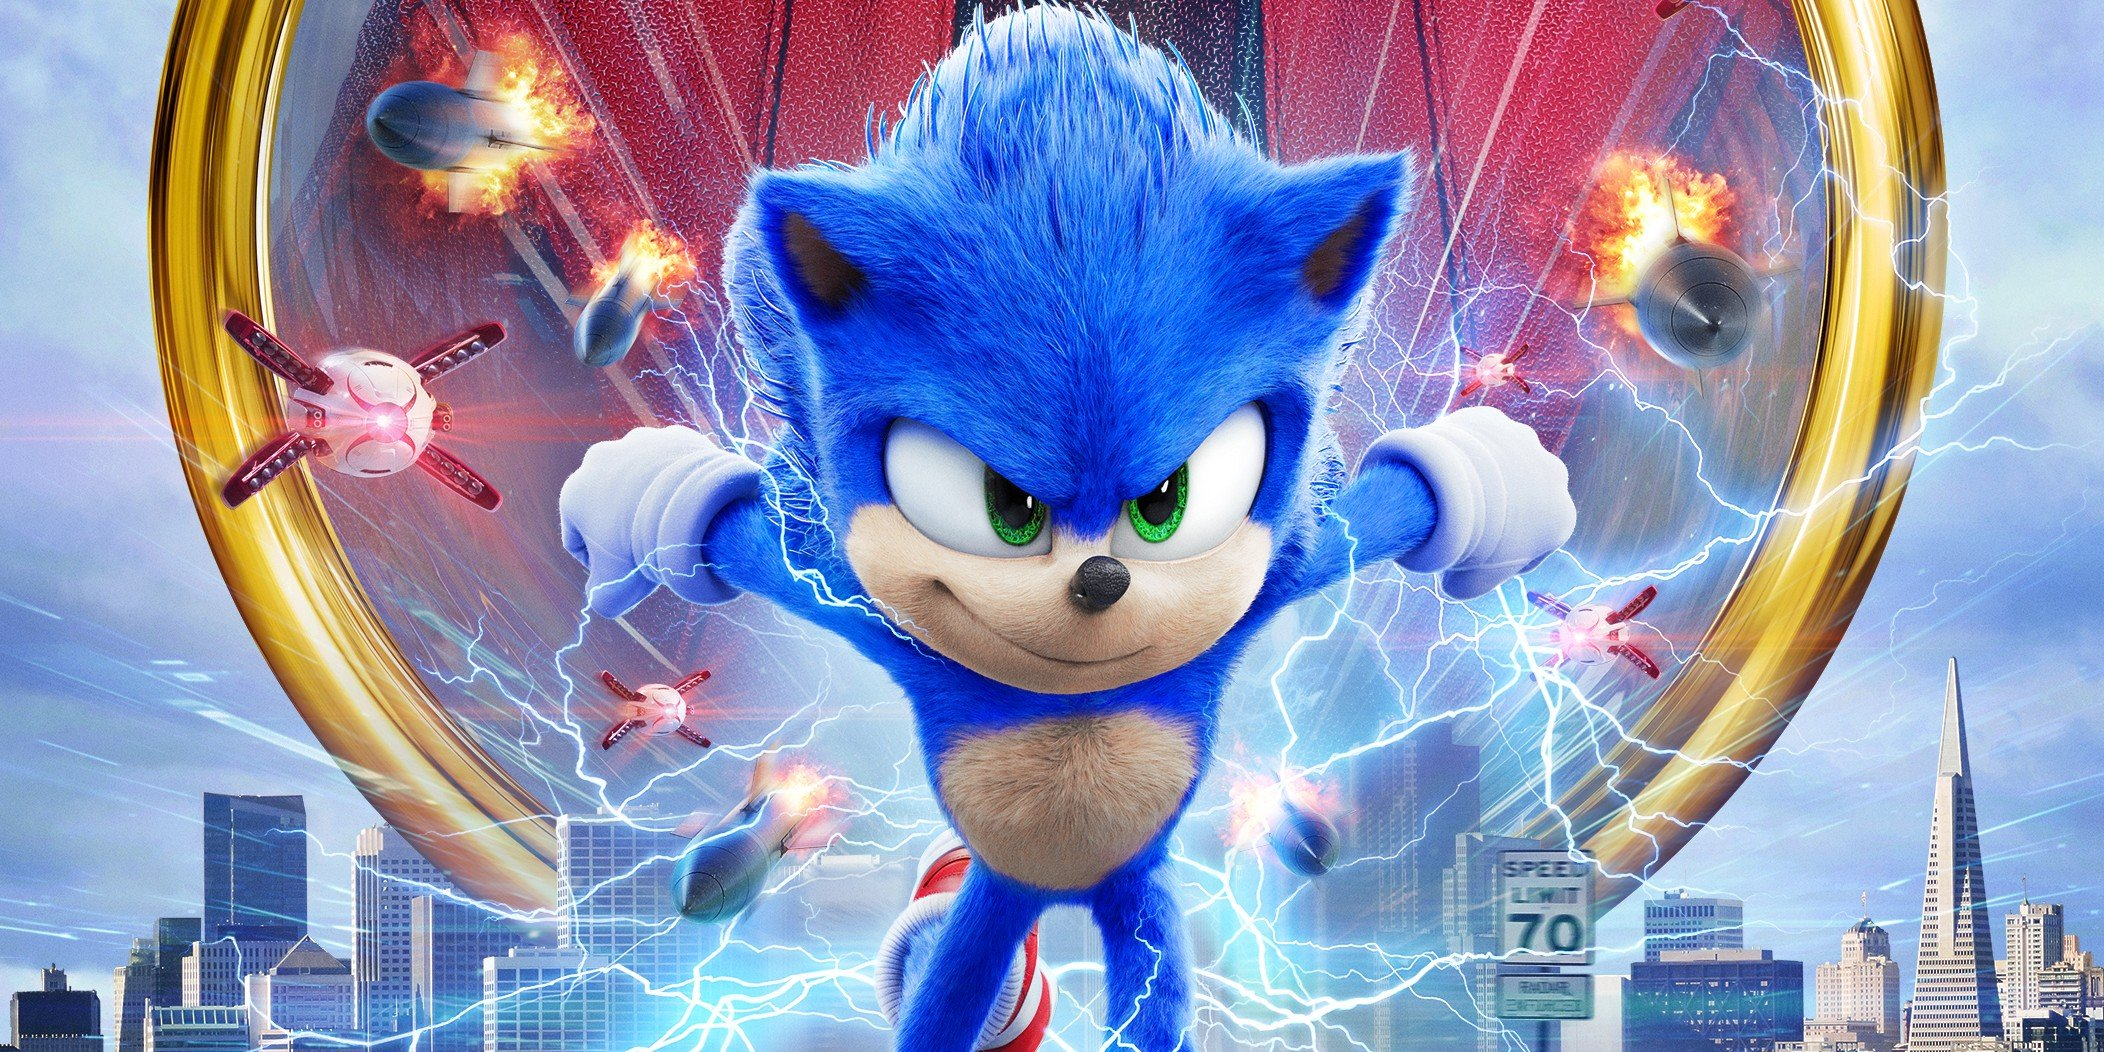 Sonic-the-Hedgehog-2020-movie-redesign-poster-header